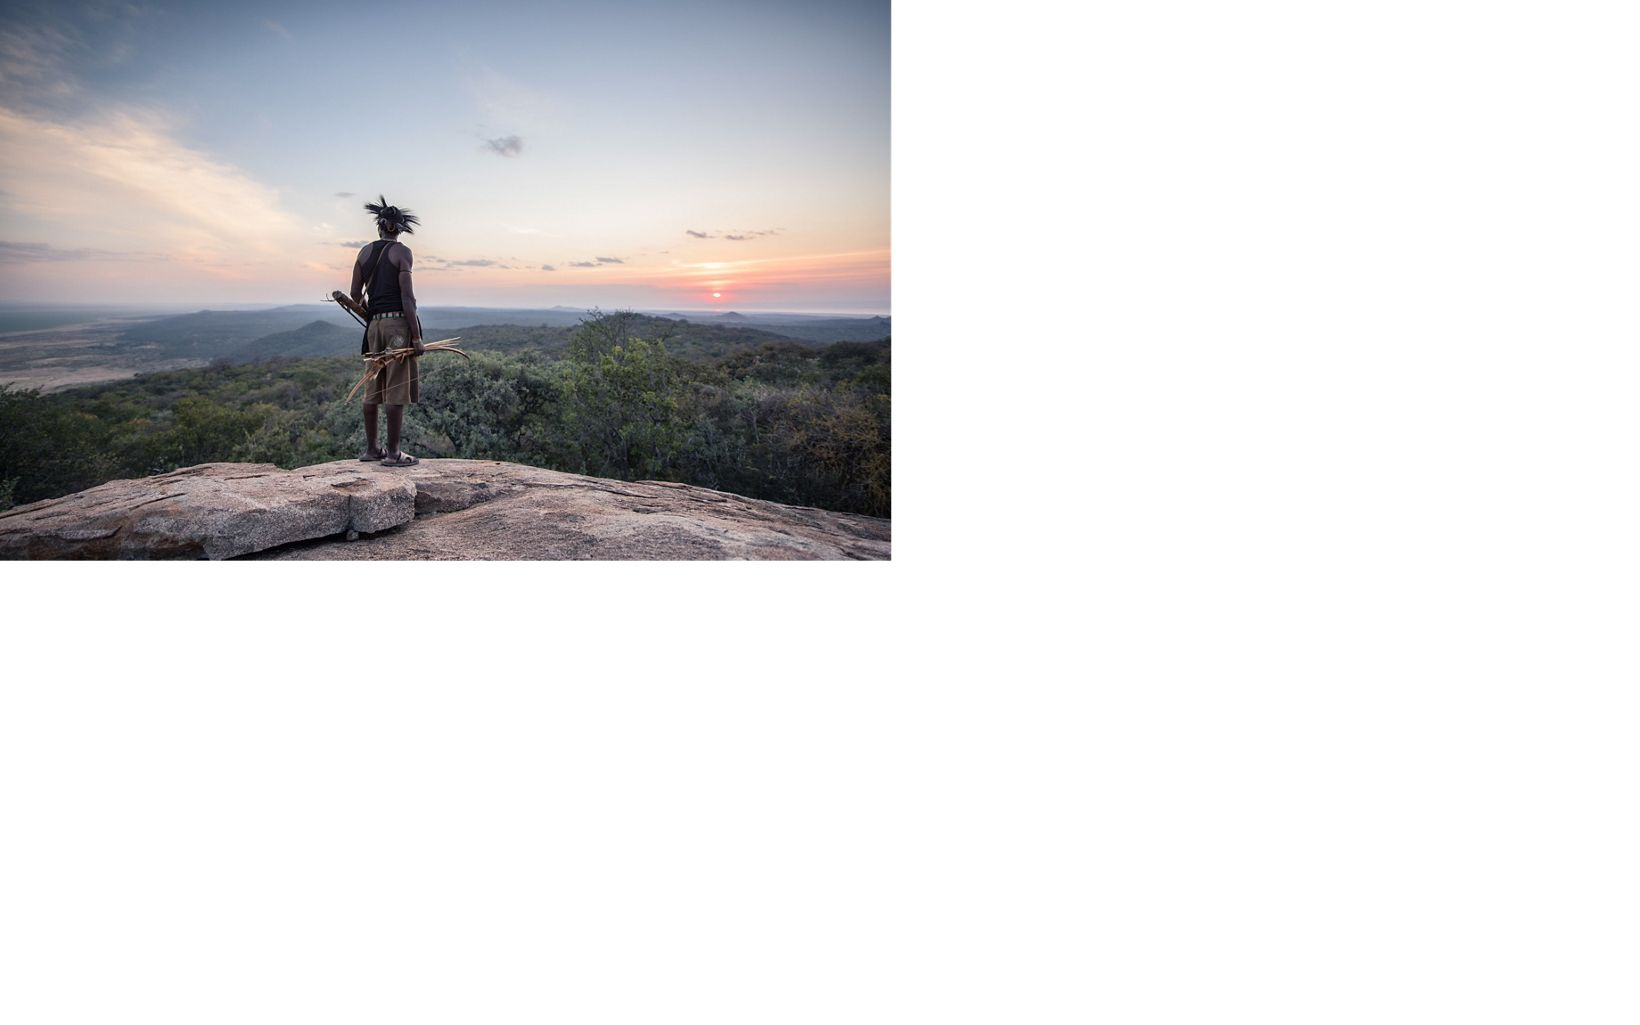 Hadza man looking at a sunset